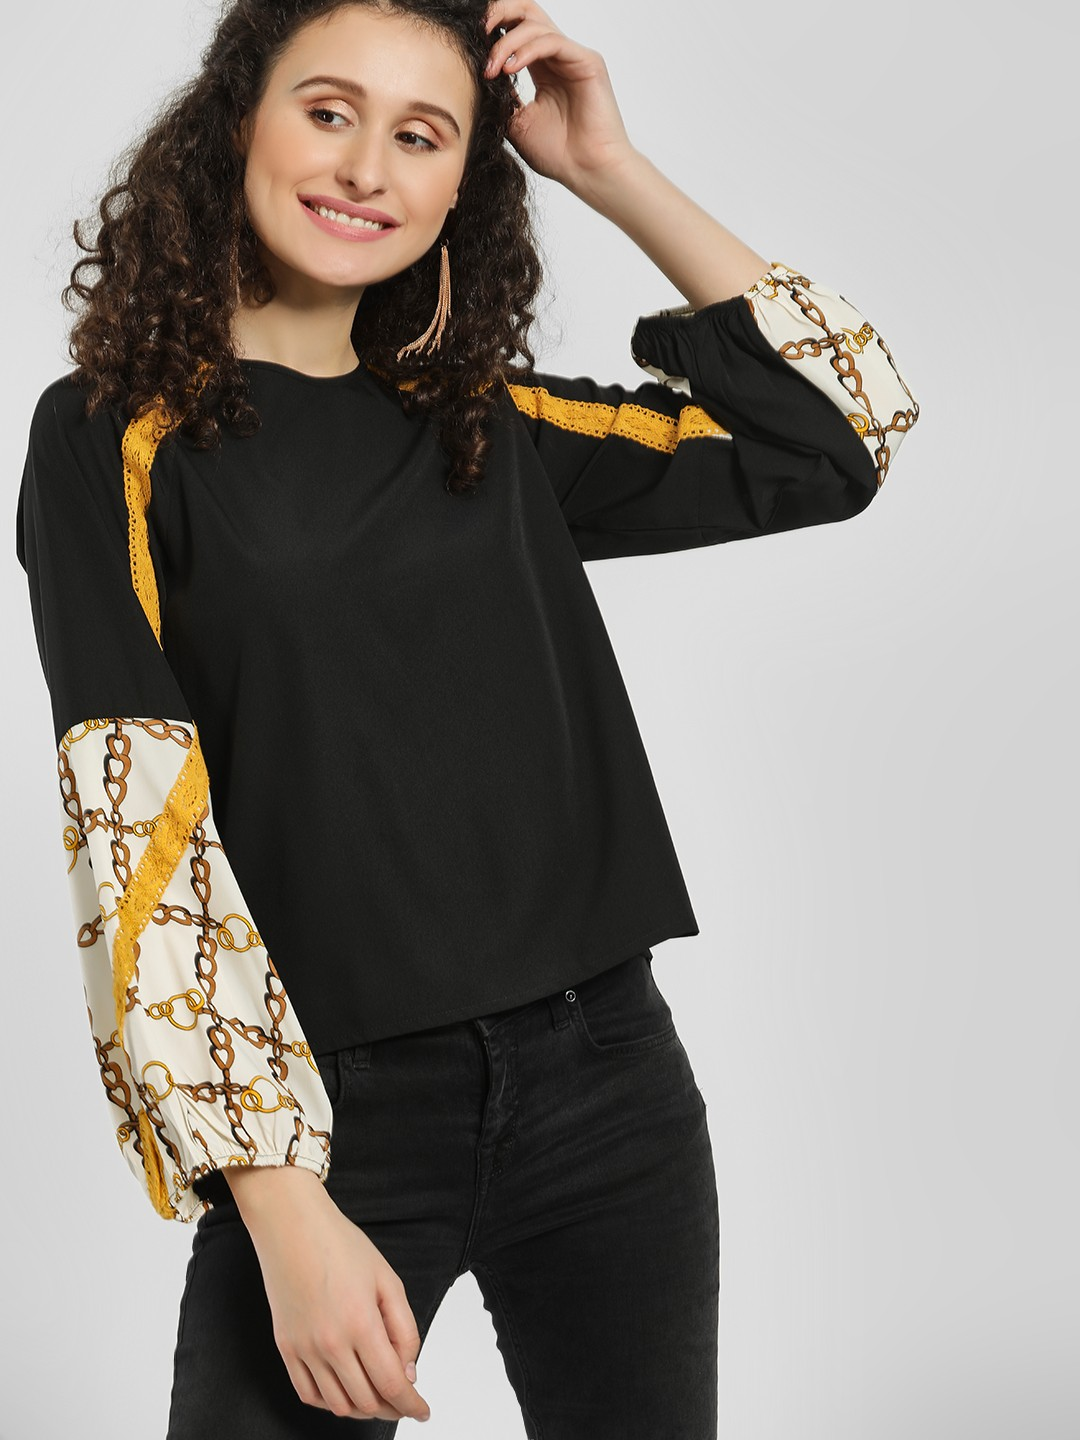 The Gud Look Black/Yellow/Print Mixed Print Color Block Blouse 1